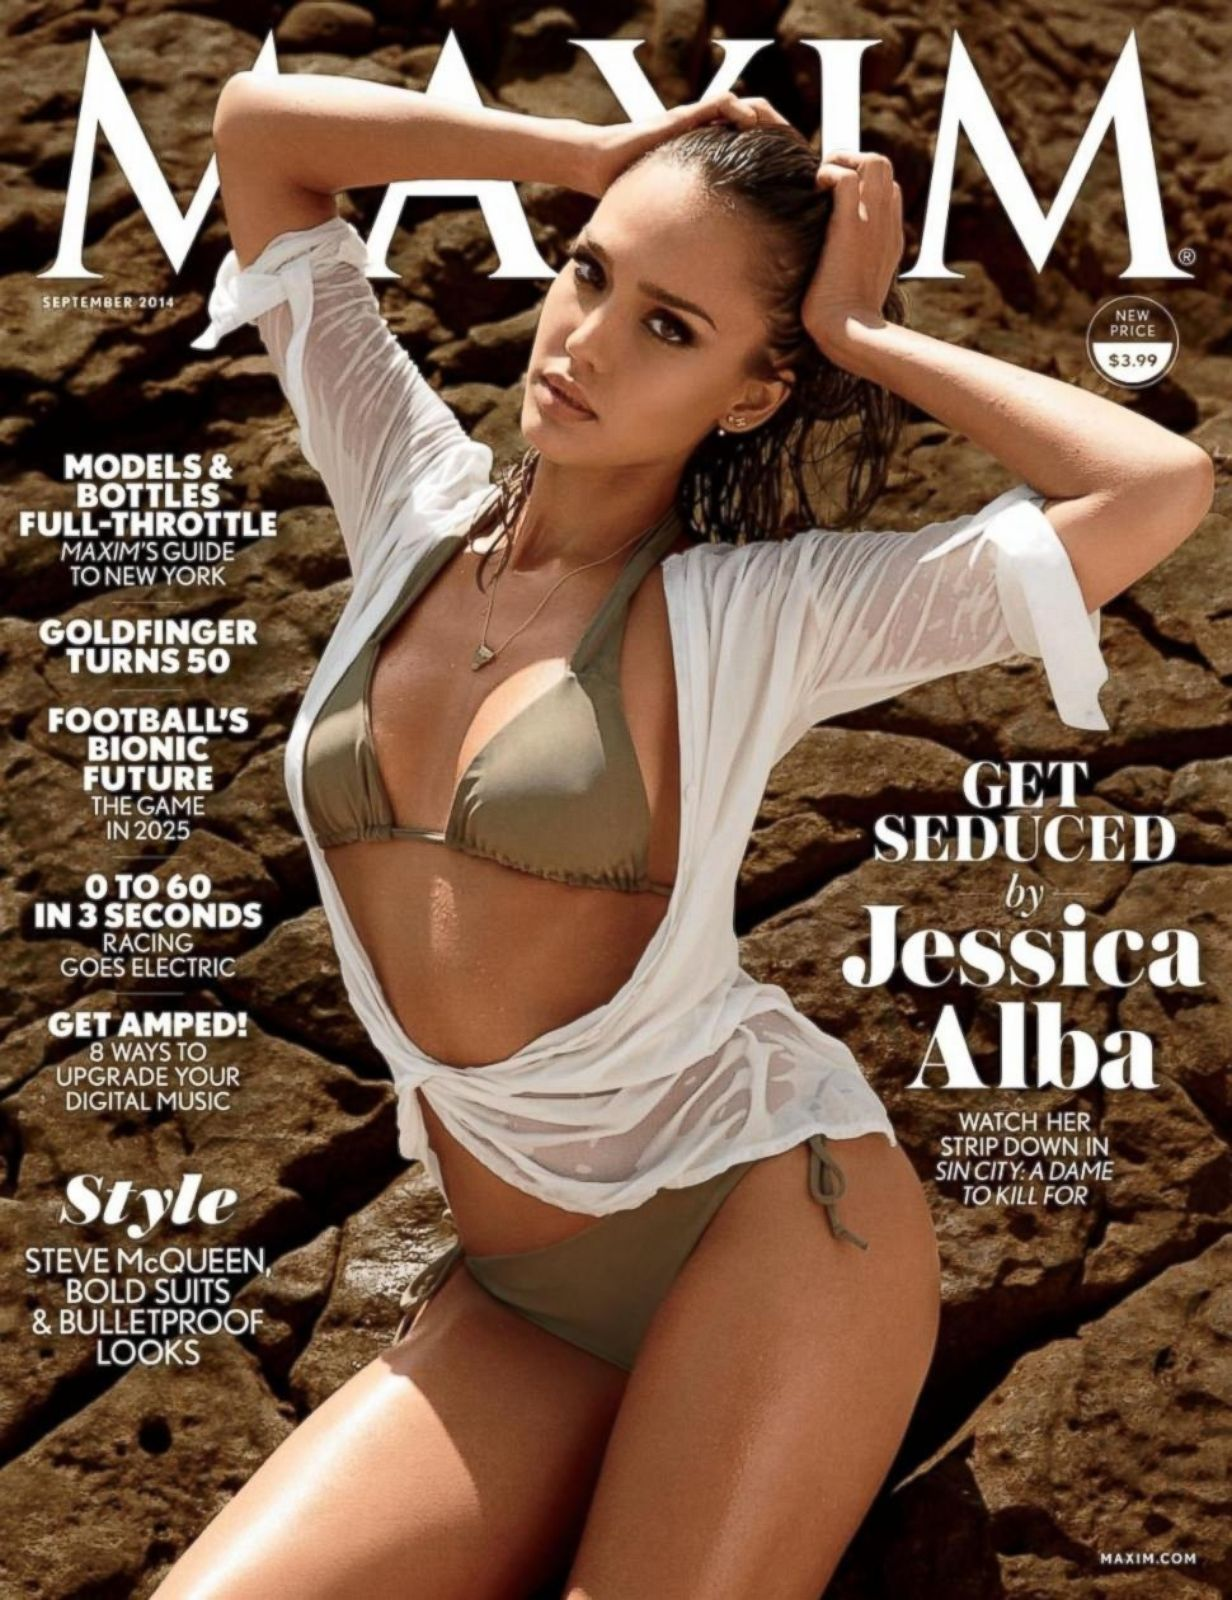 Julia Louis-Dreyfus Naked Rolling Stone Cover Has A